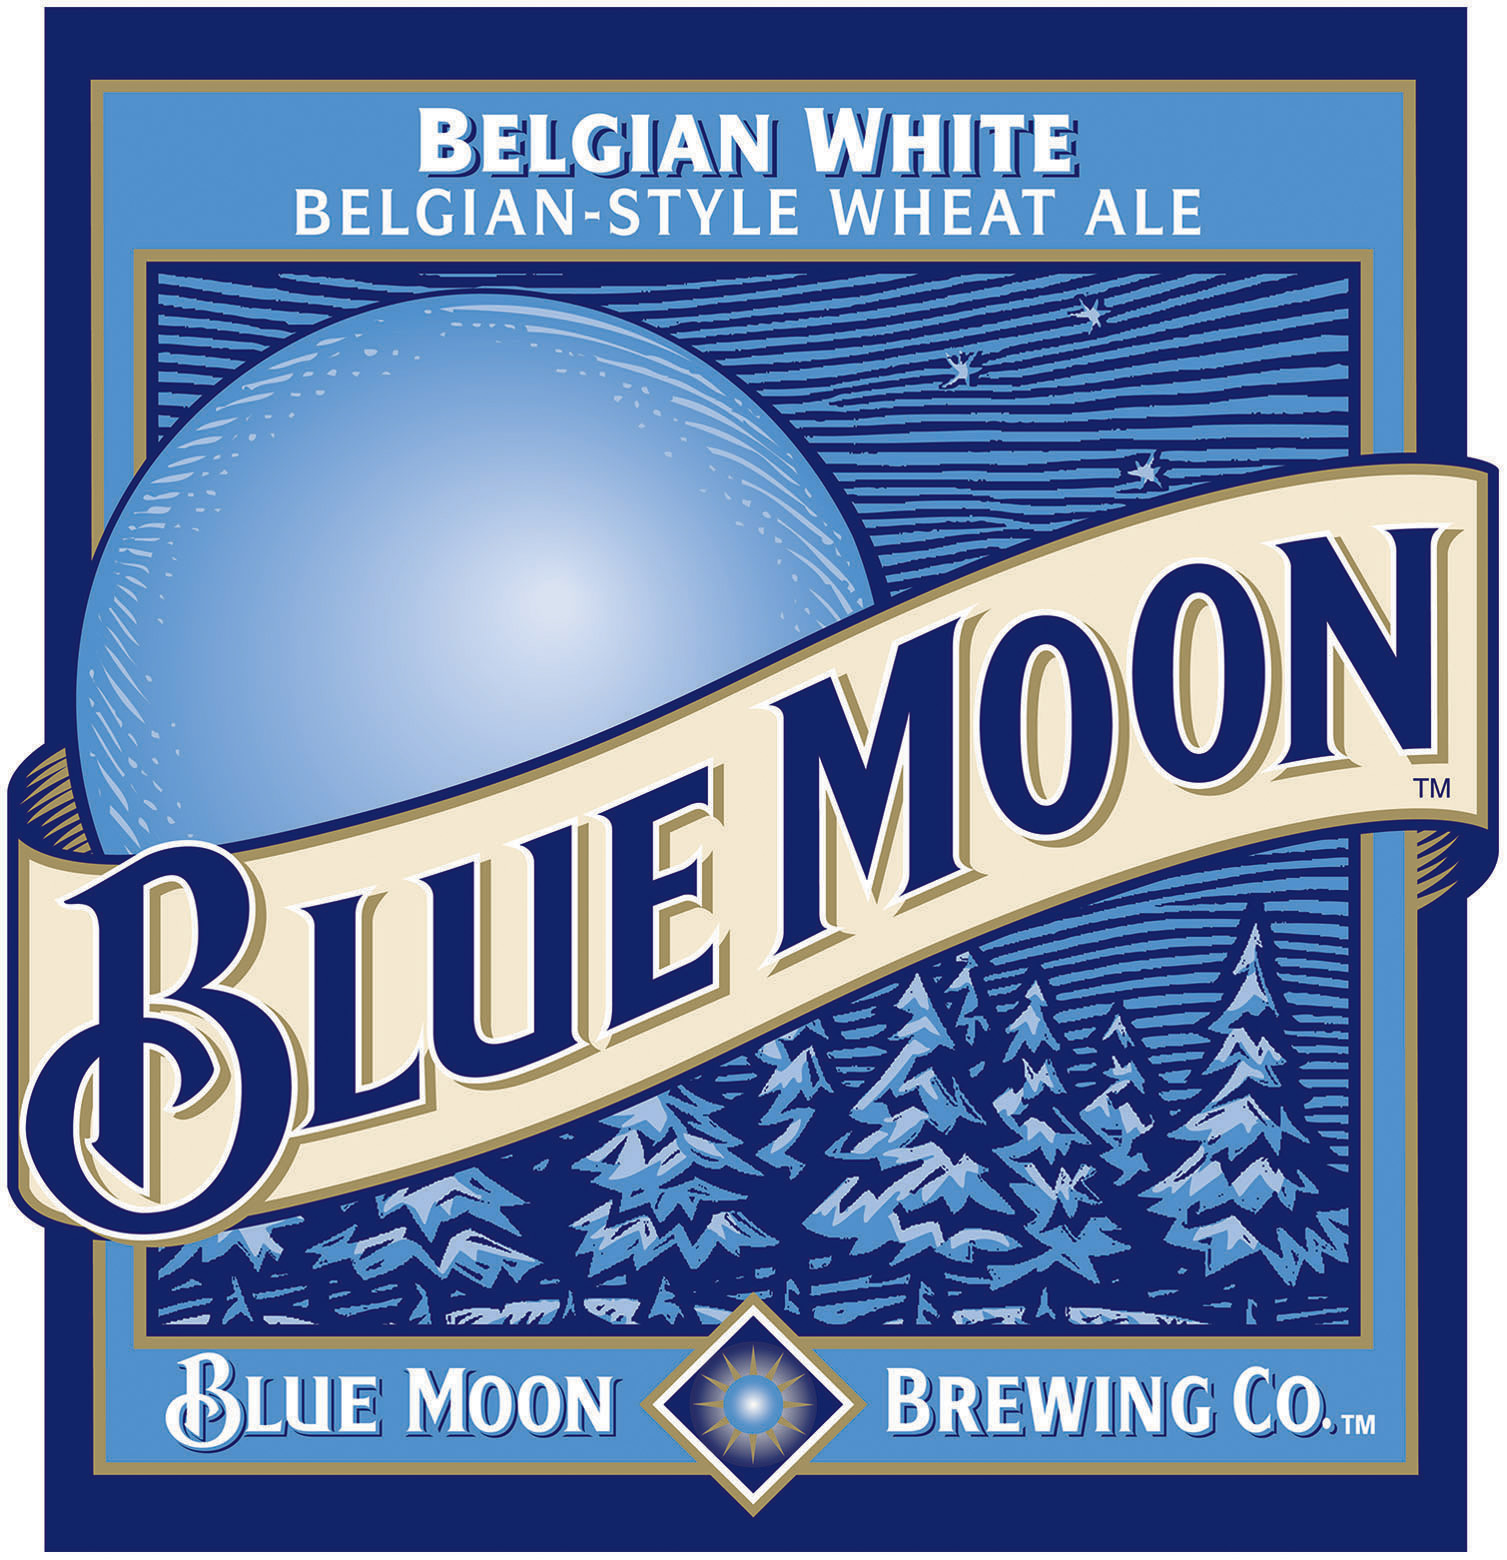 The Blue Moon aesthetics go beyond just the logo. The packaging is also very well-done and inviting.